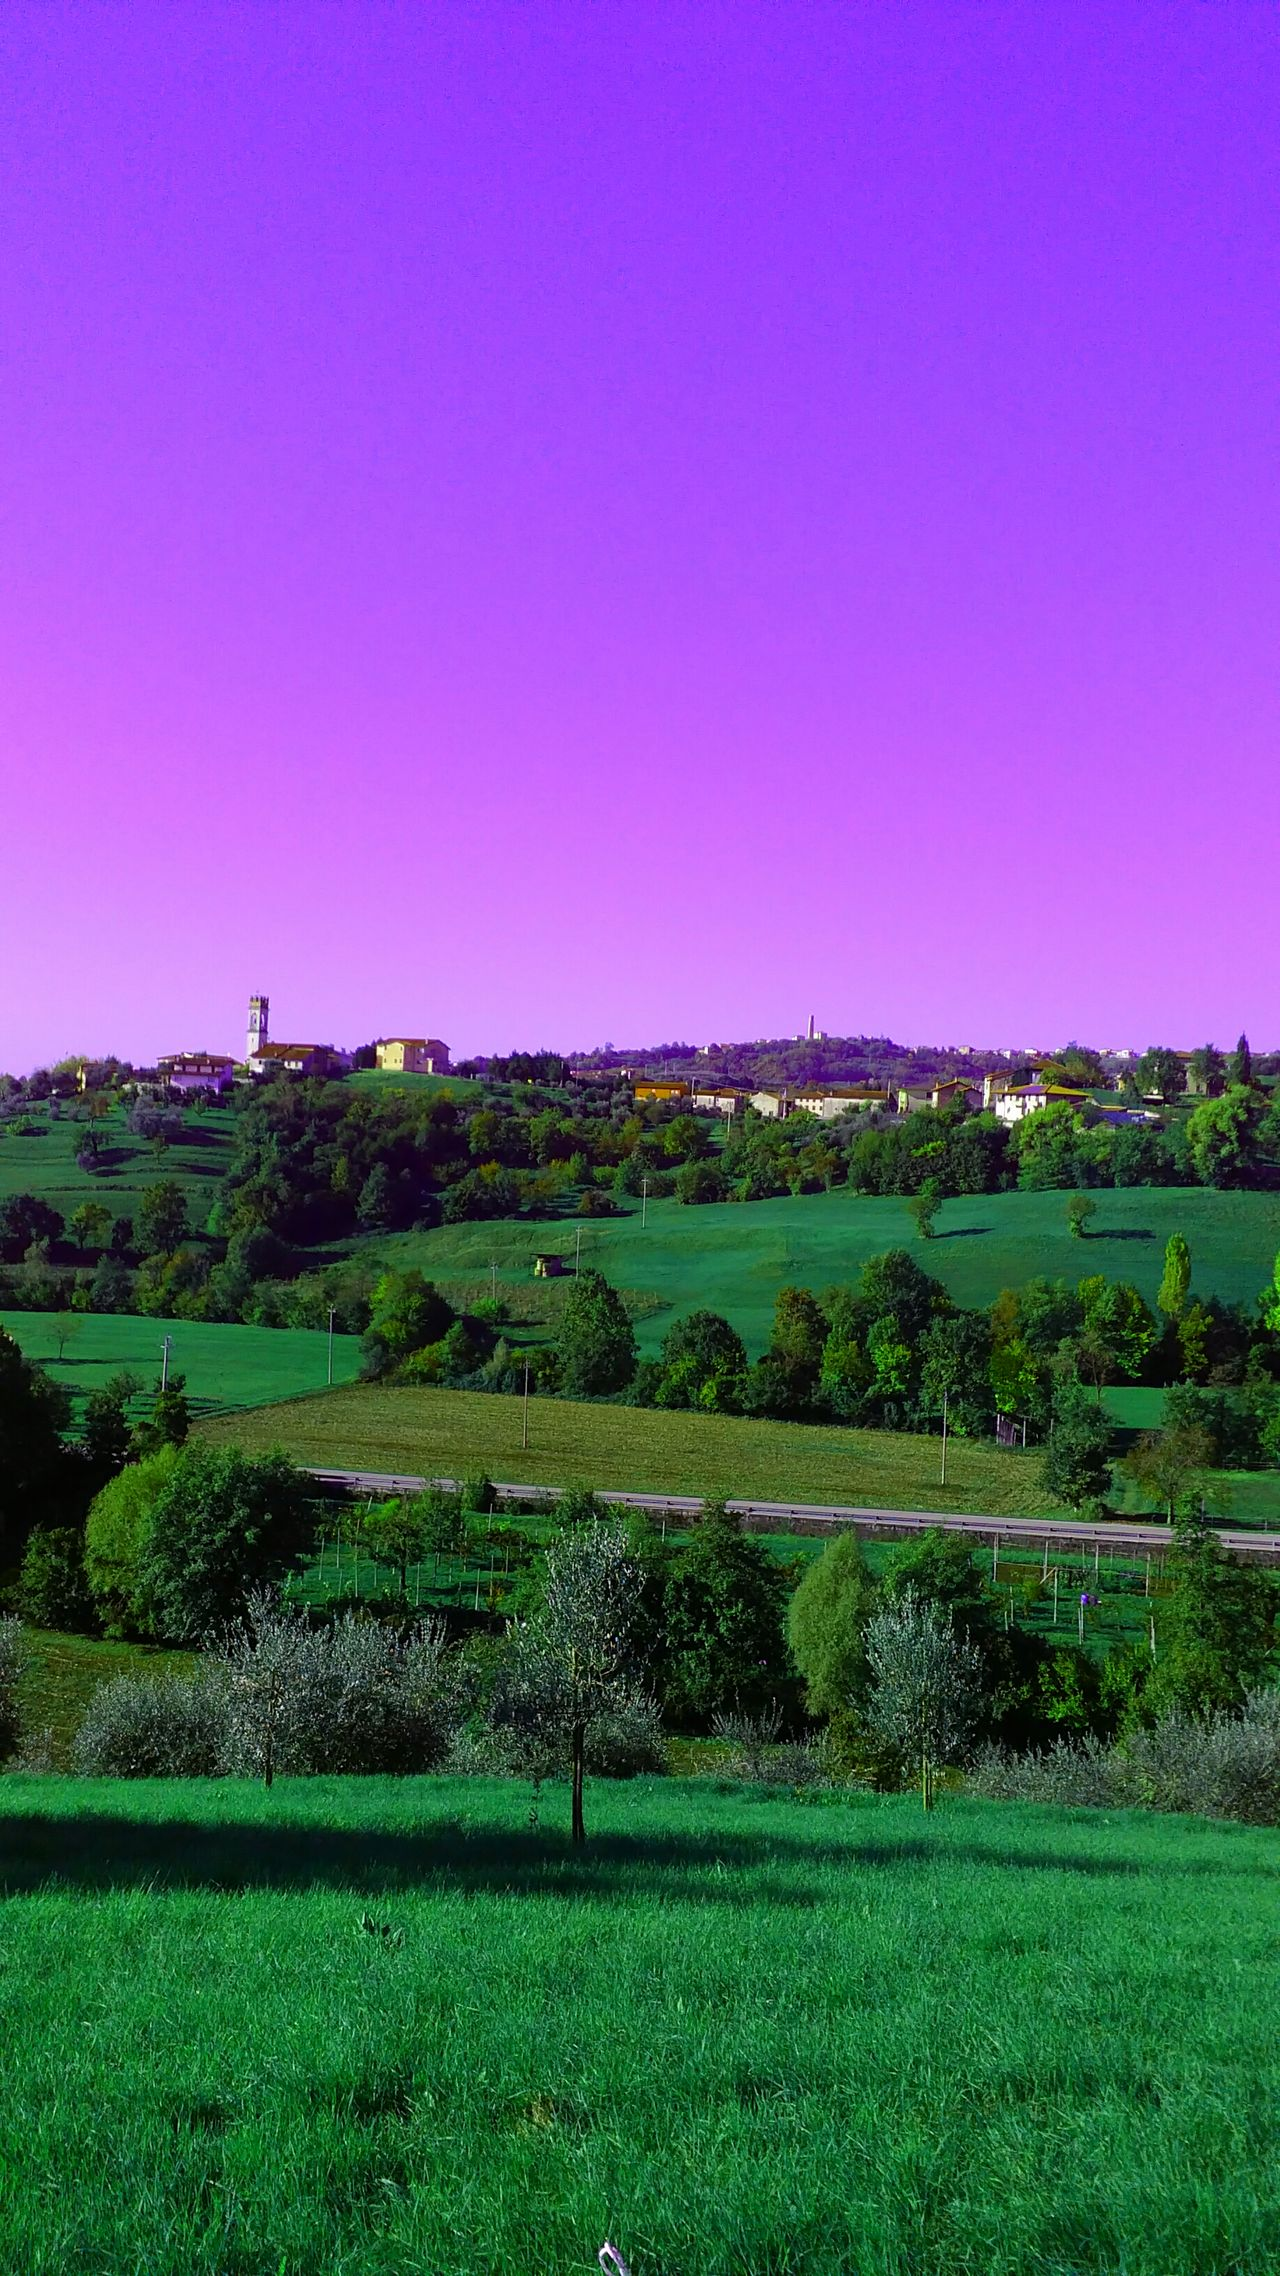 Agriculture Architecture Beauty In Nature Clear Sky Copy Space Day Field Green Color Growth Landscape Nature No People Outdoors Rural Scene Scenics Sky Tranquil Scene Tranquility Tree Landscape_photography Veneto Italy Hillscape Village Scape. Hills And Valleys Nature_collection Grassfield